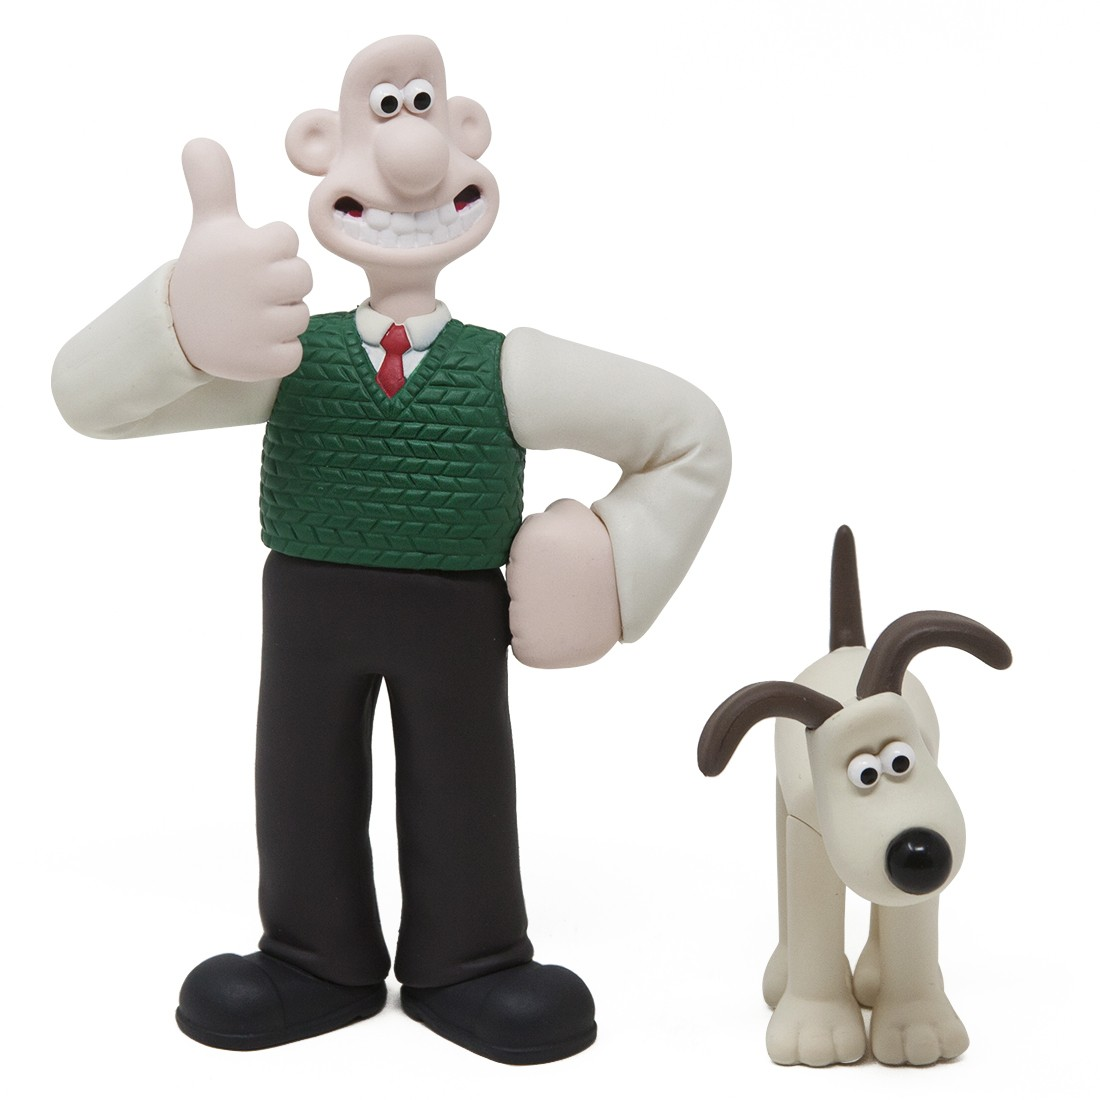 Medicom udf aardman animations series 1 wallace and gromit wallace and gromit white